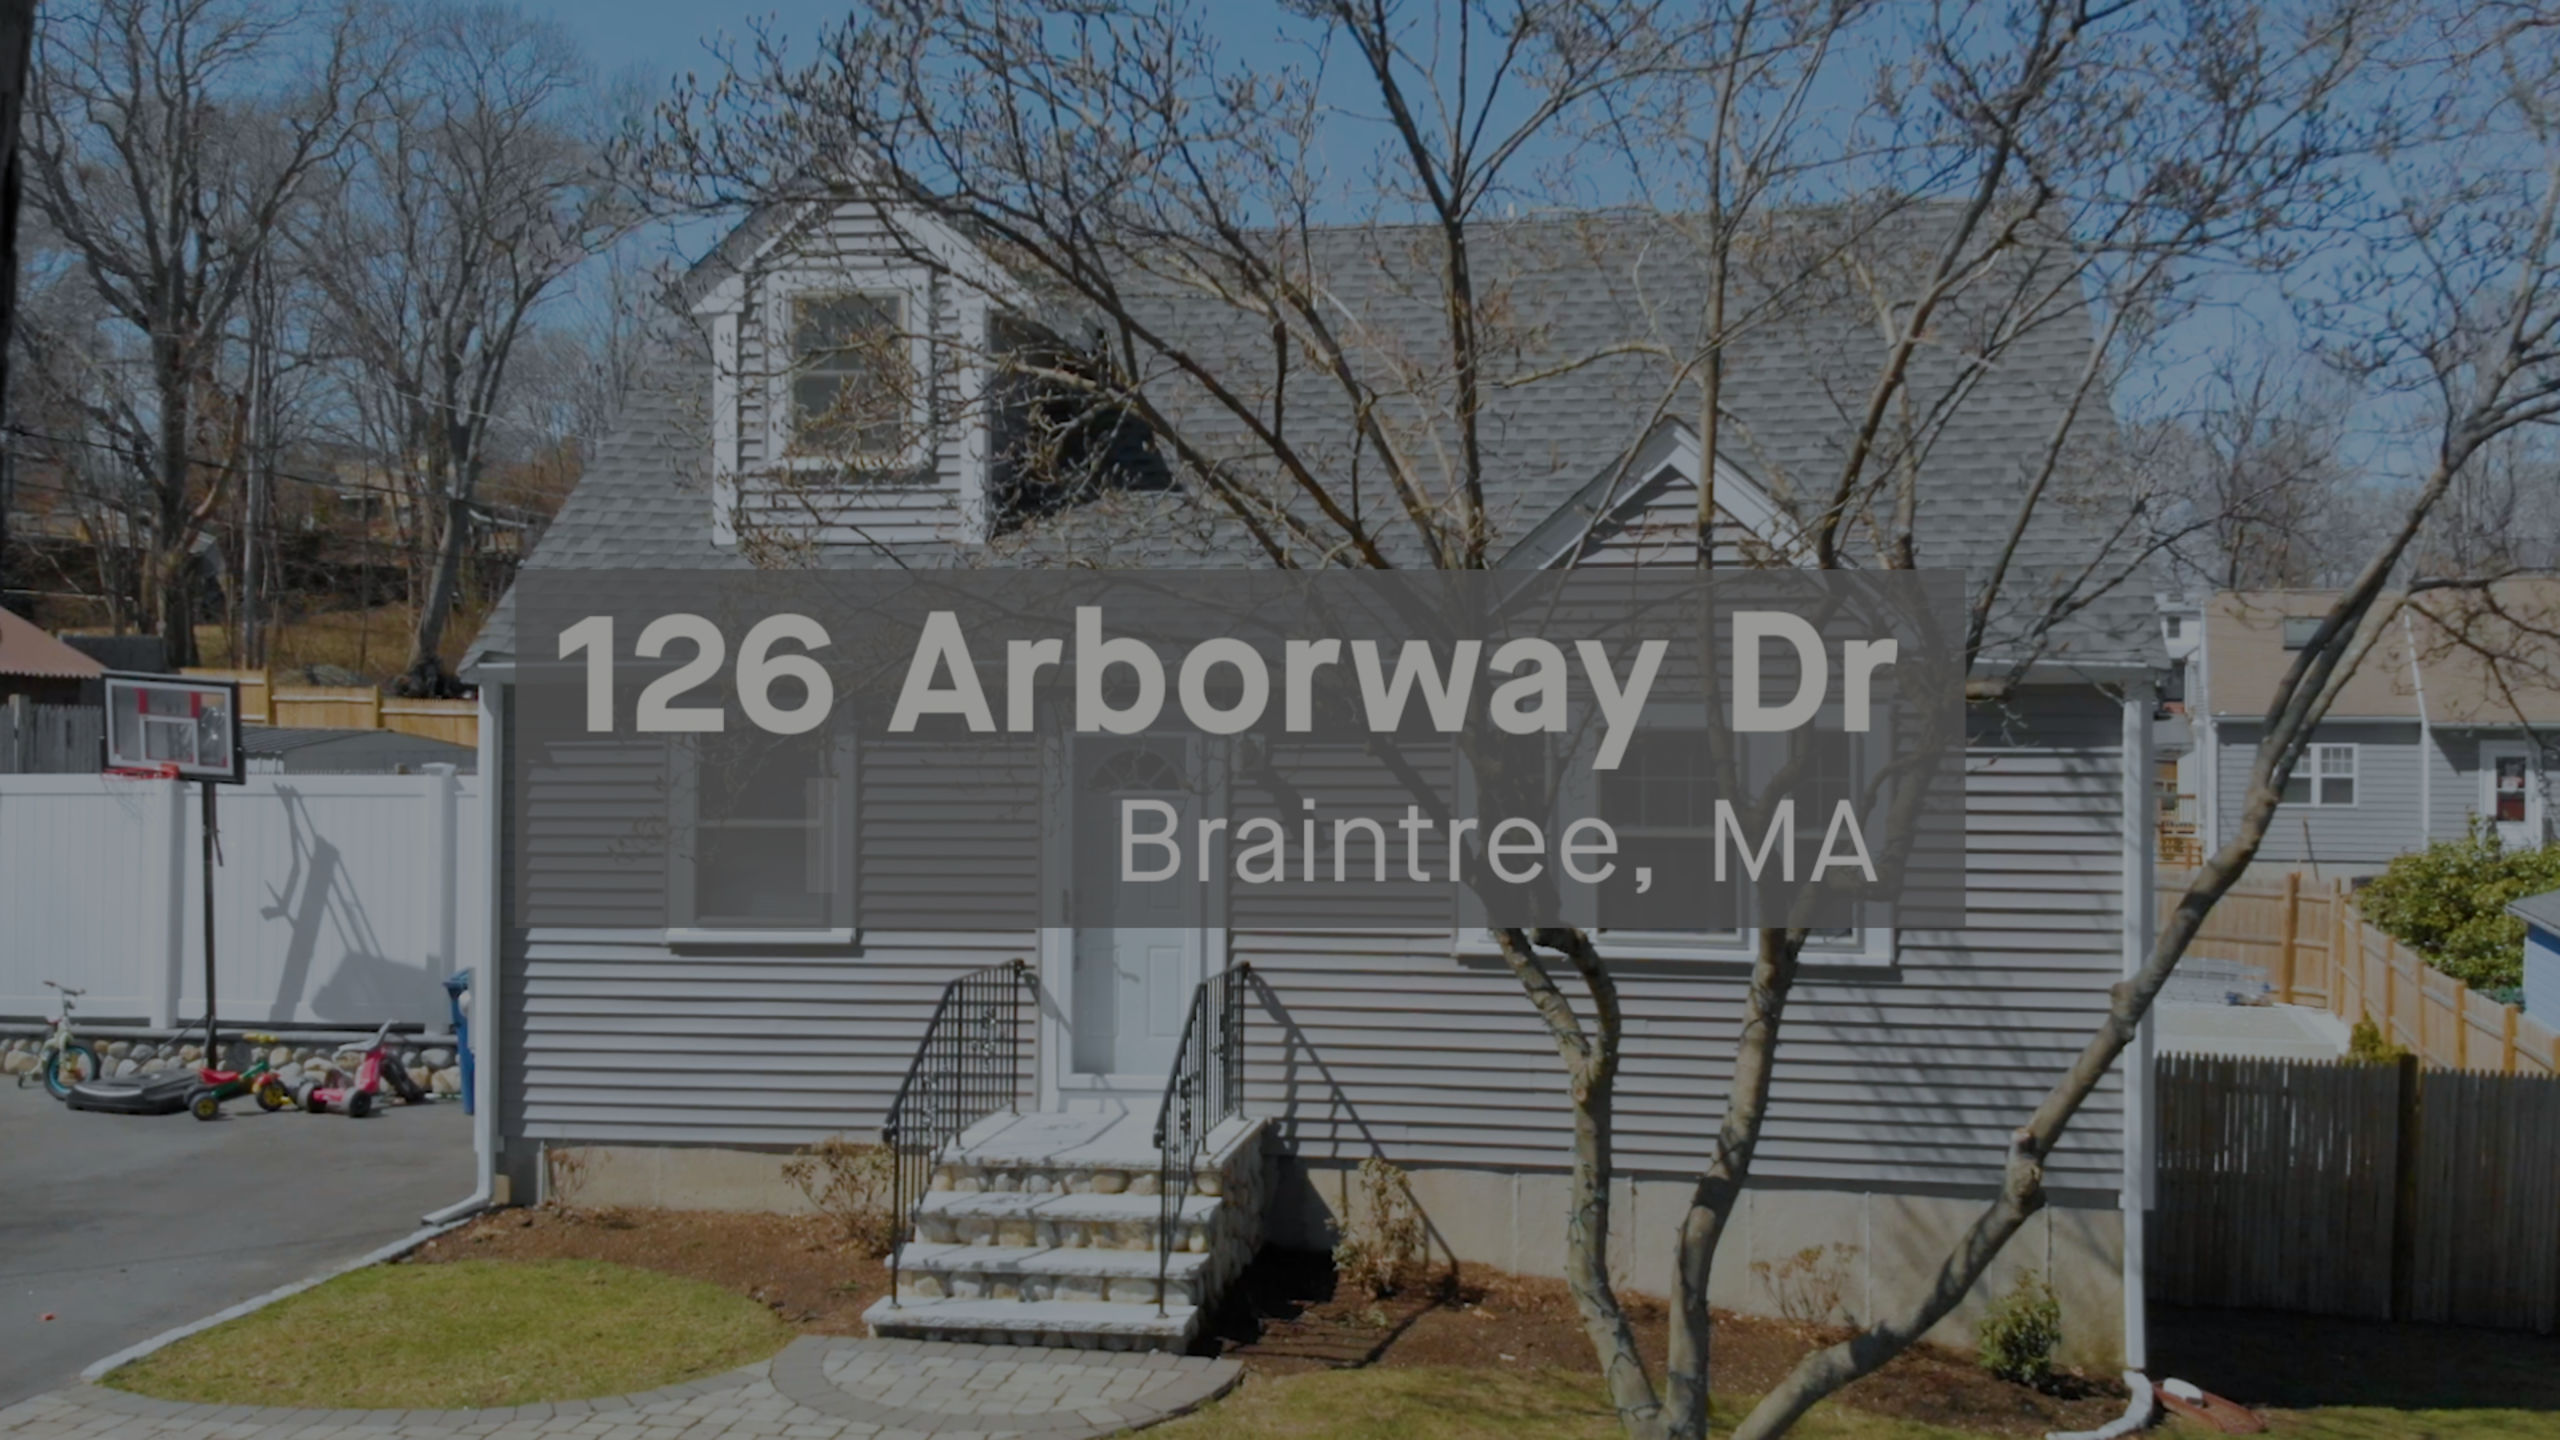 126 Arborway Dr, Braintree